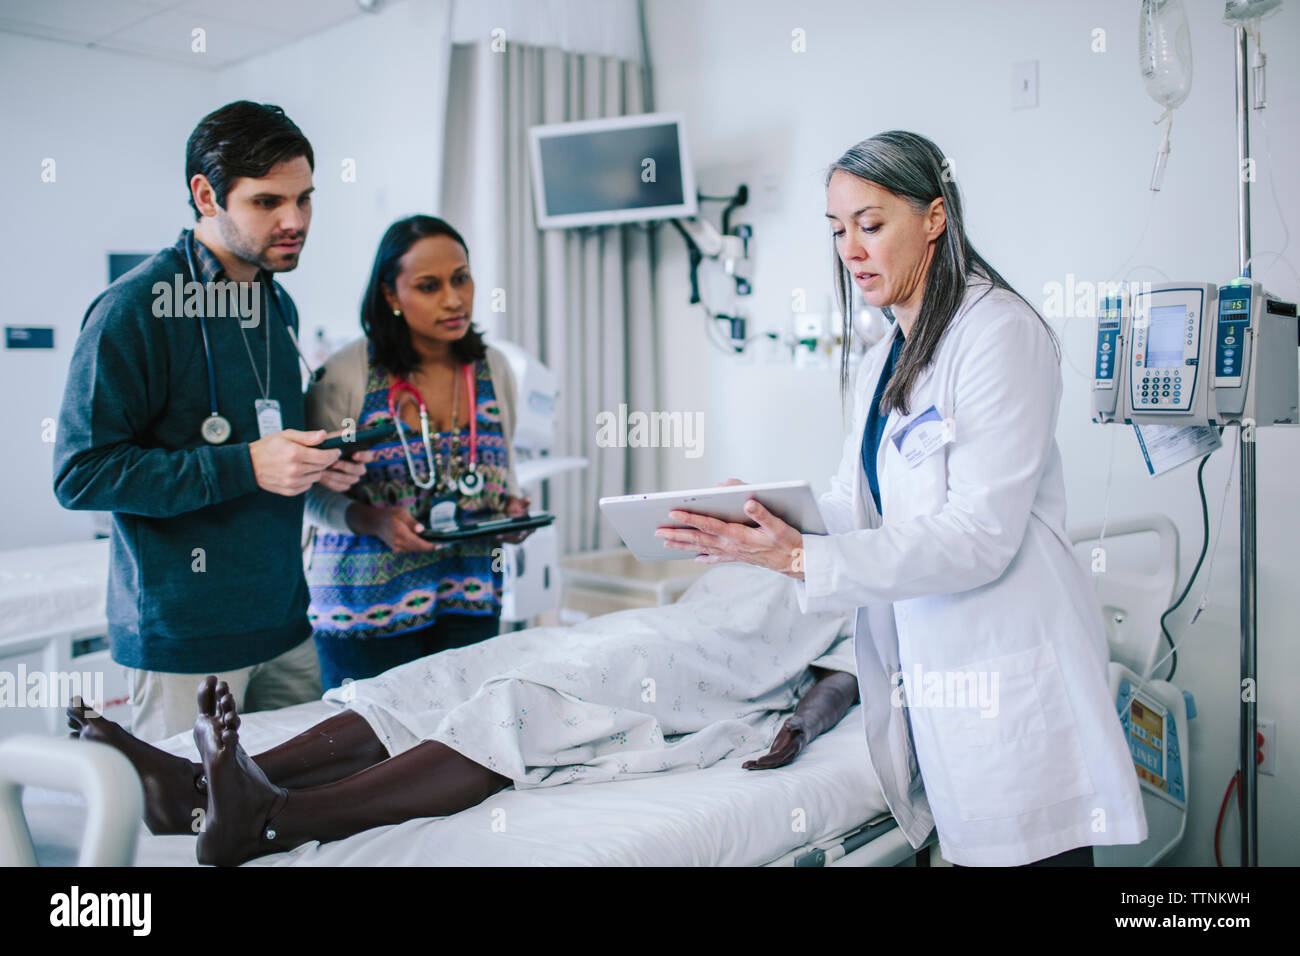 Female doctor training coworkers over tablet computer in medical school - Stock Image